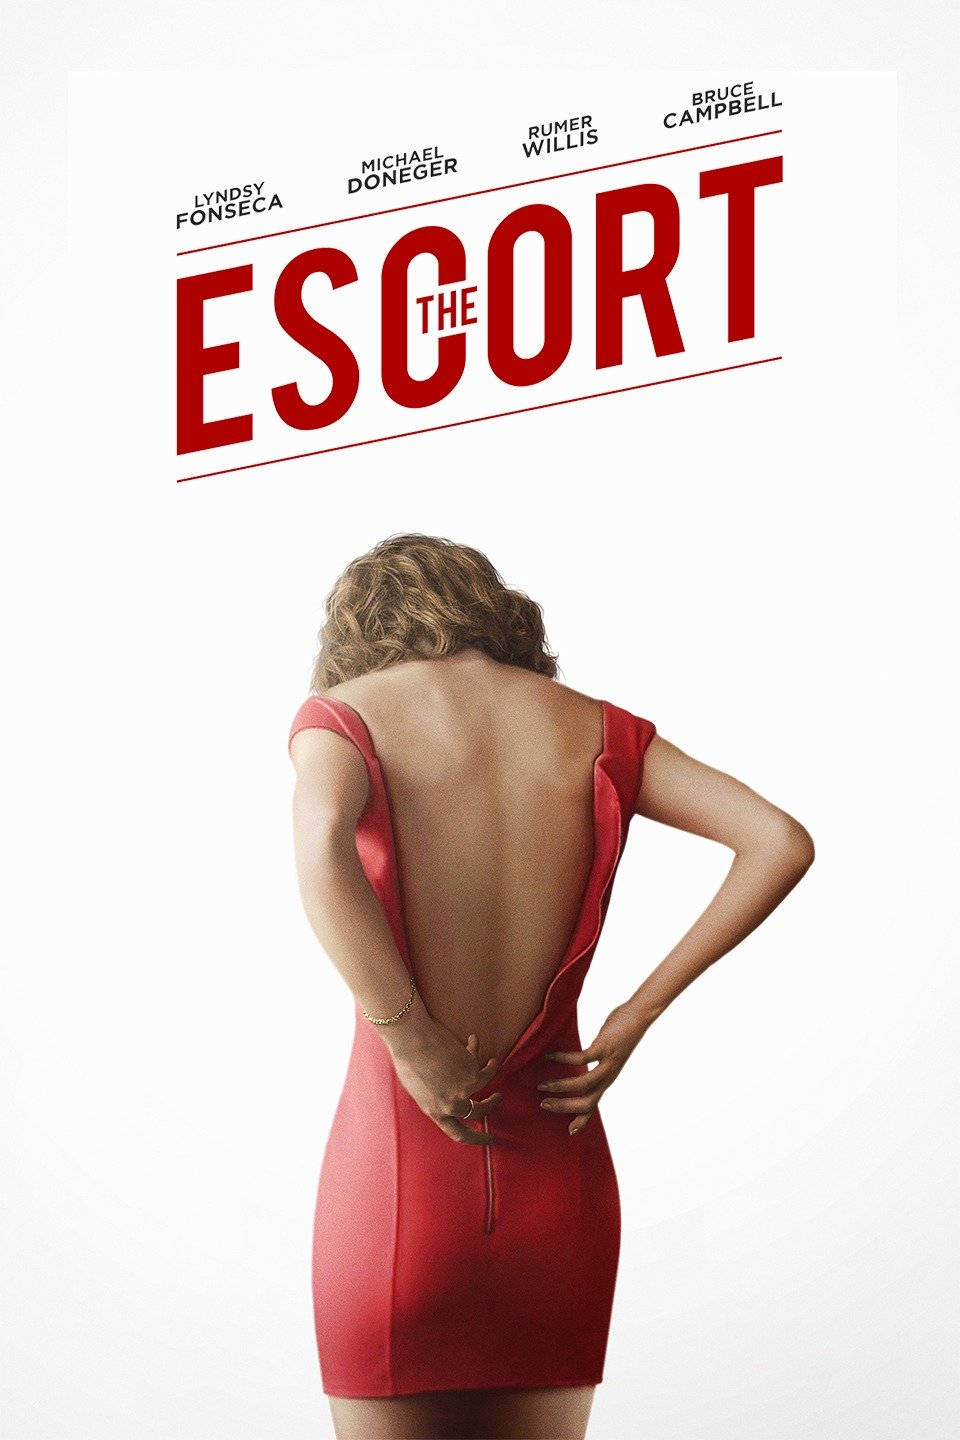 The Escort (2015) 720p WERip X264 687 MB